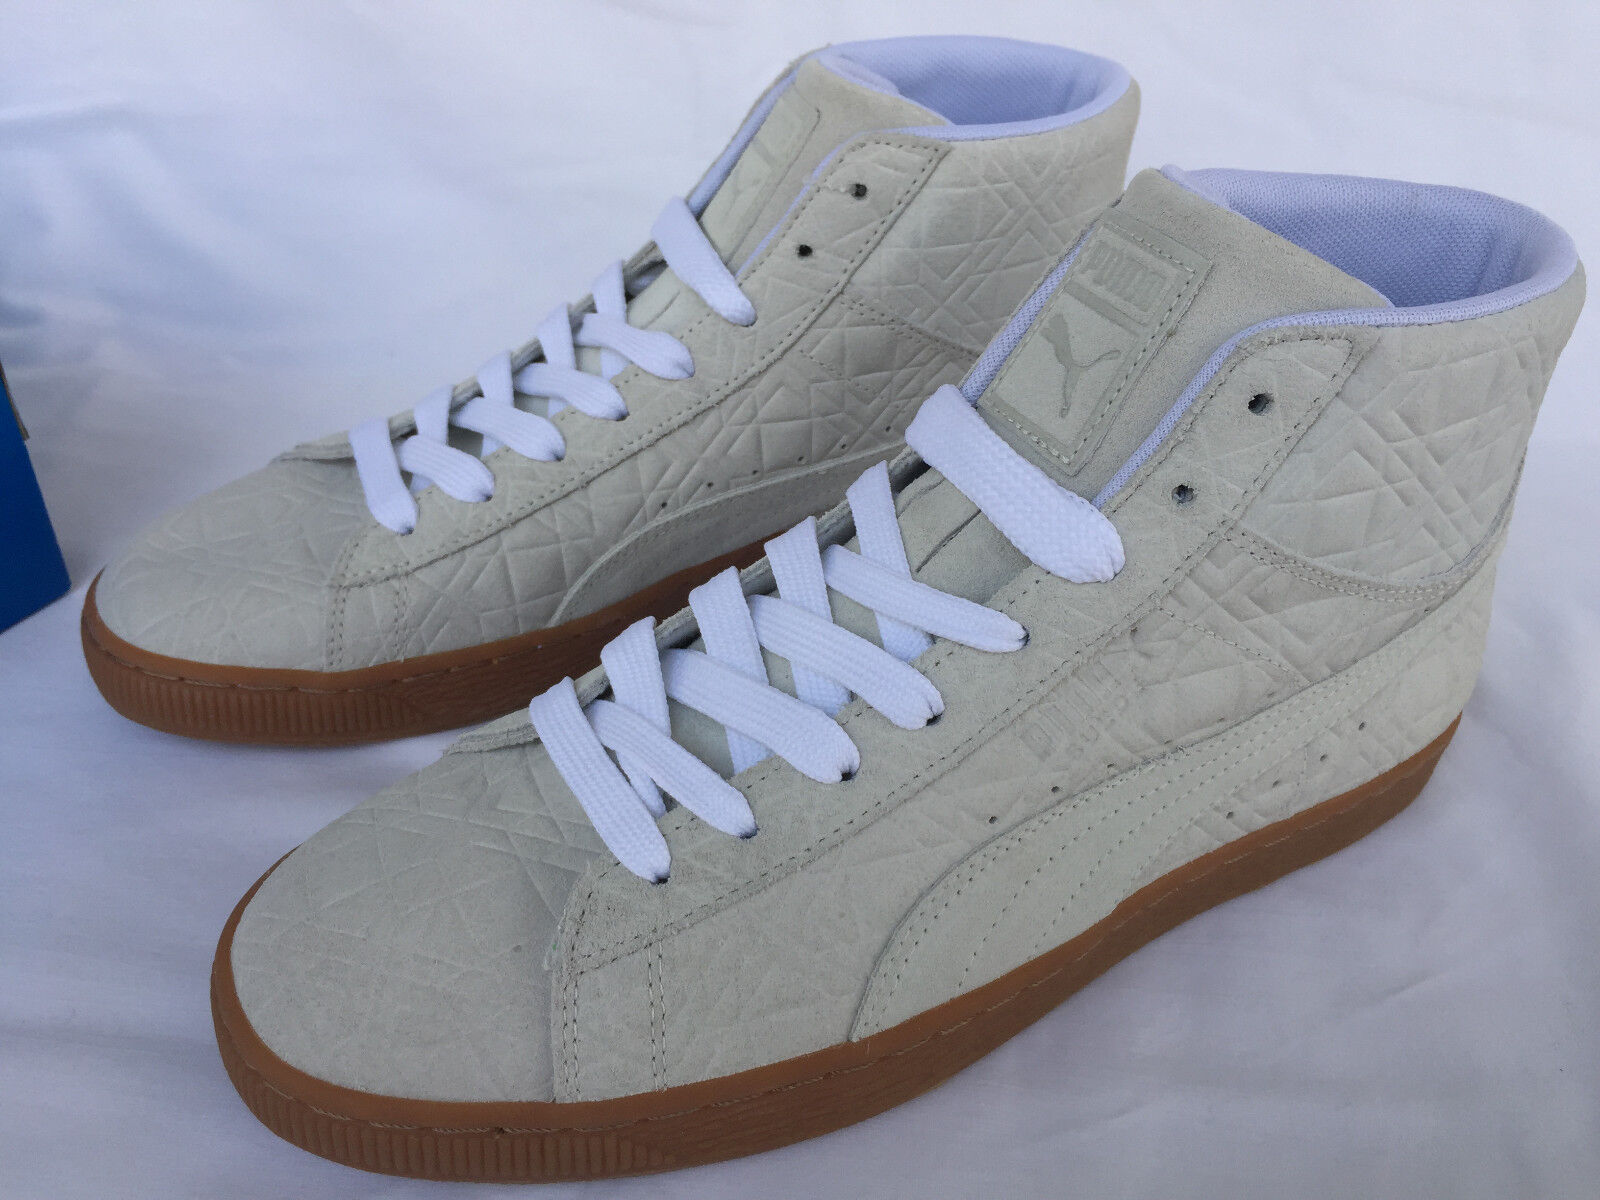 Puma Suede Mid Emboss FA 36223902 Wht Gum Sneakers Chaussures Homme  Skate Futbol